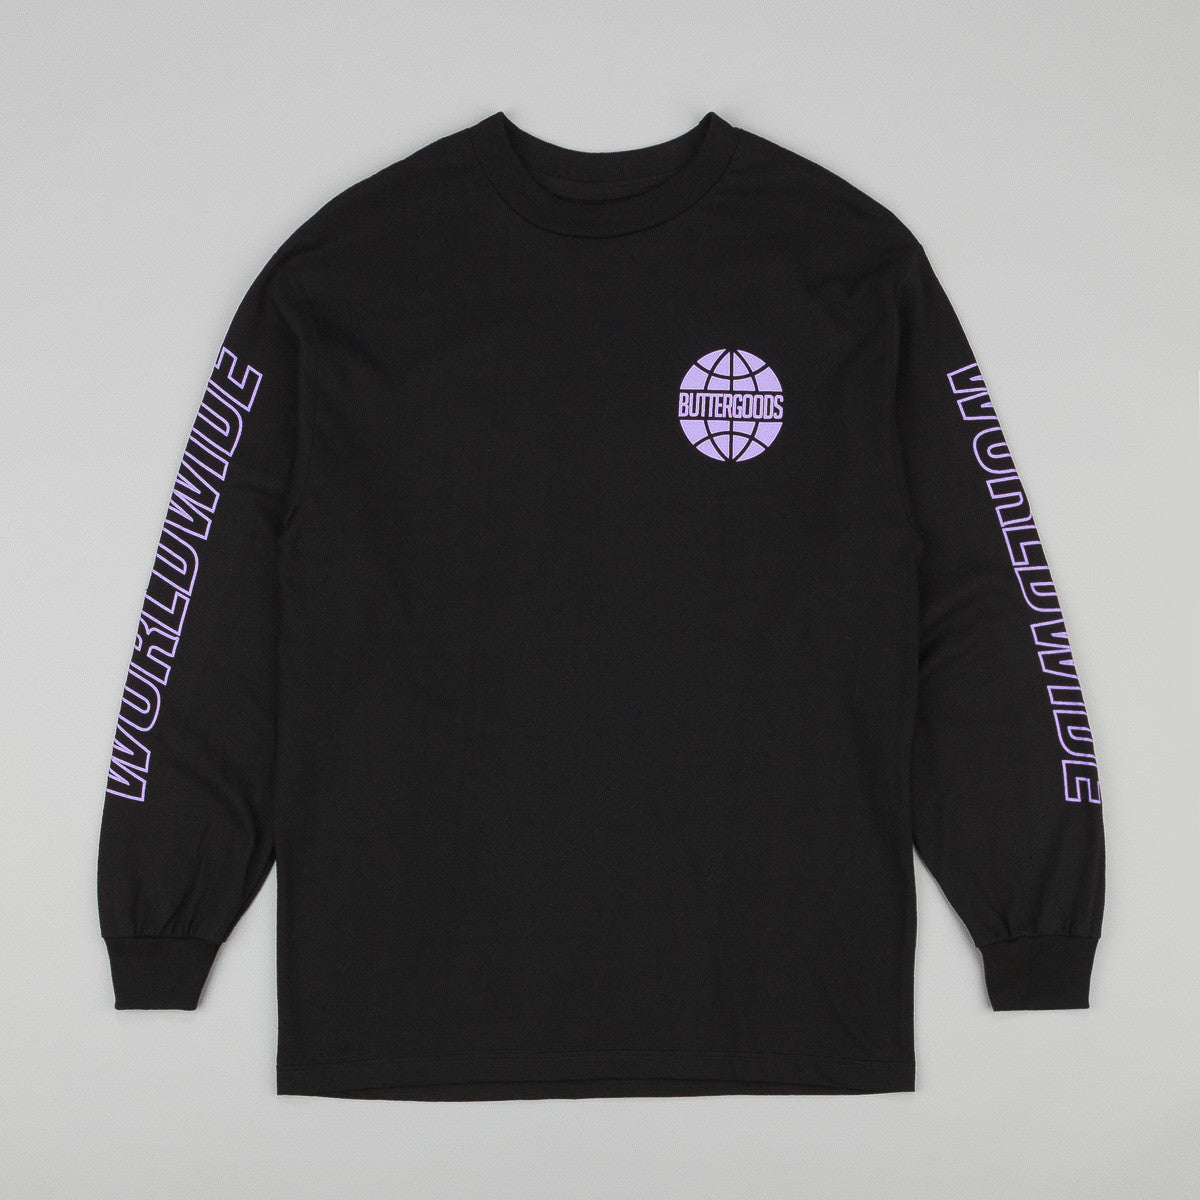 Butter Goods Worldwide Outline Long Sleeve T-Shirt - Black